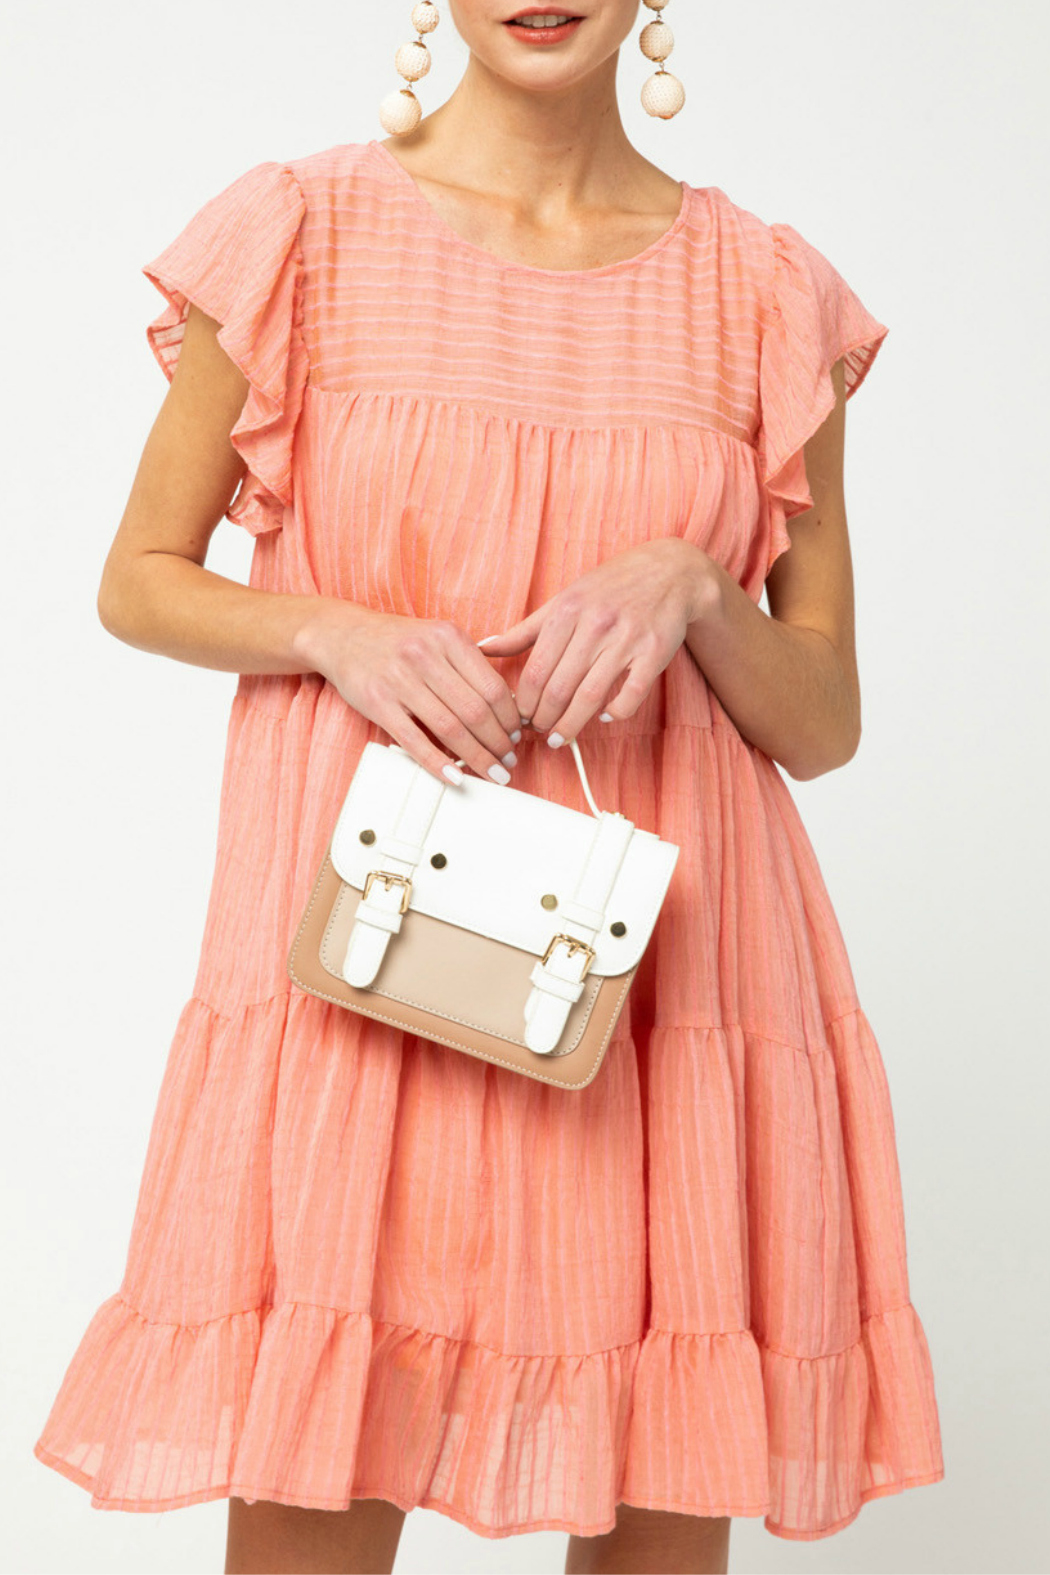 entro  Pinstriped Tiered Dress - Main Image